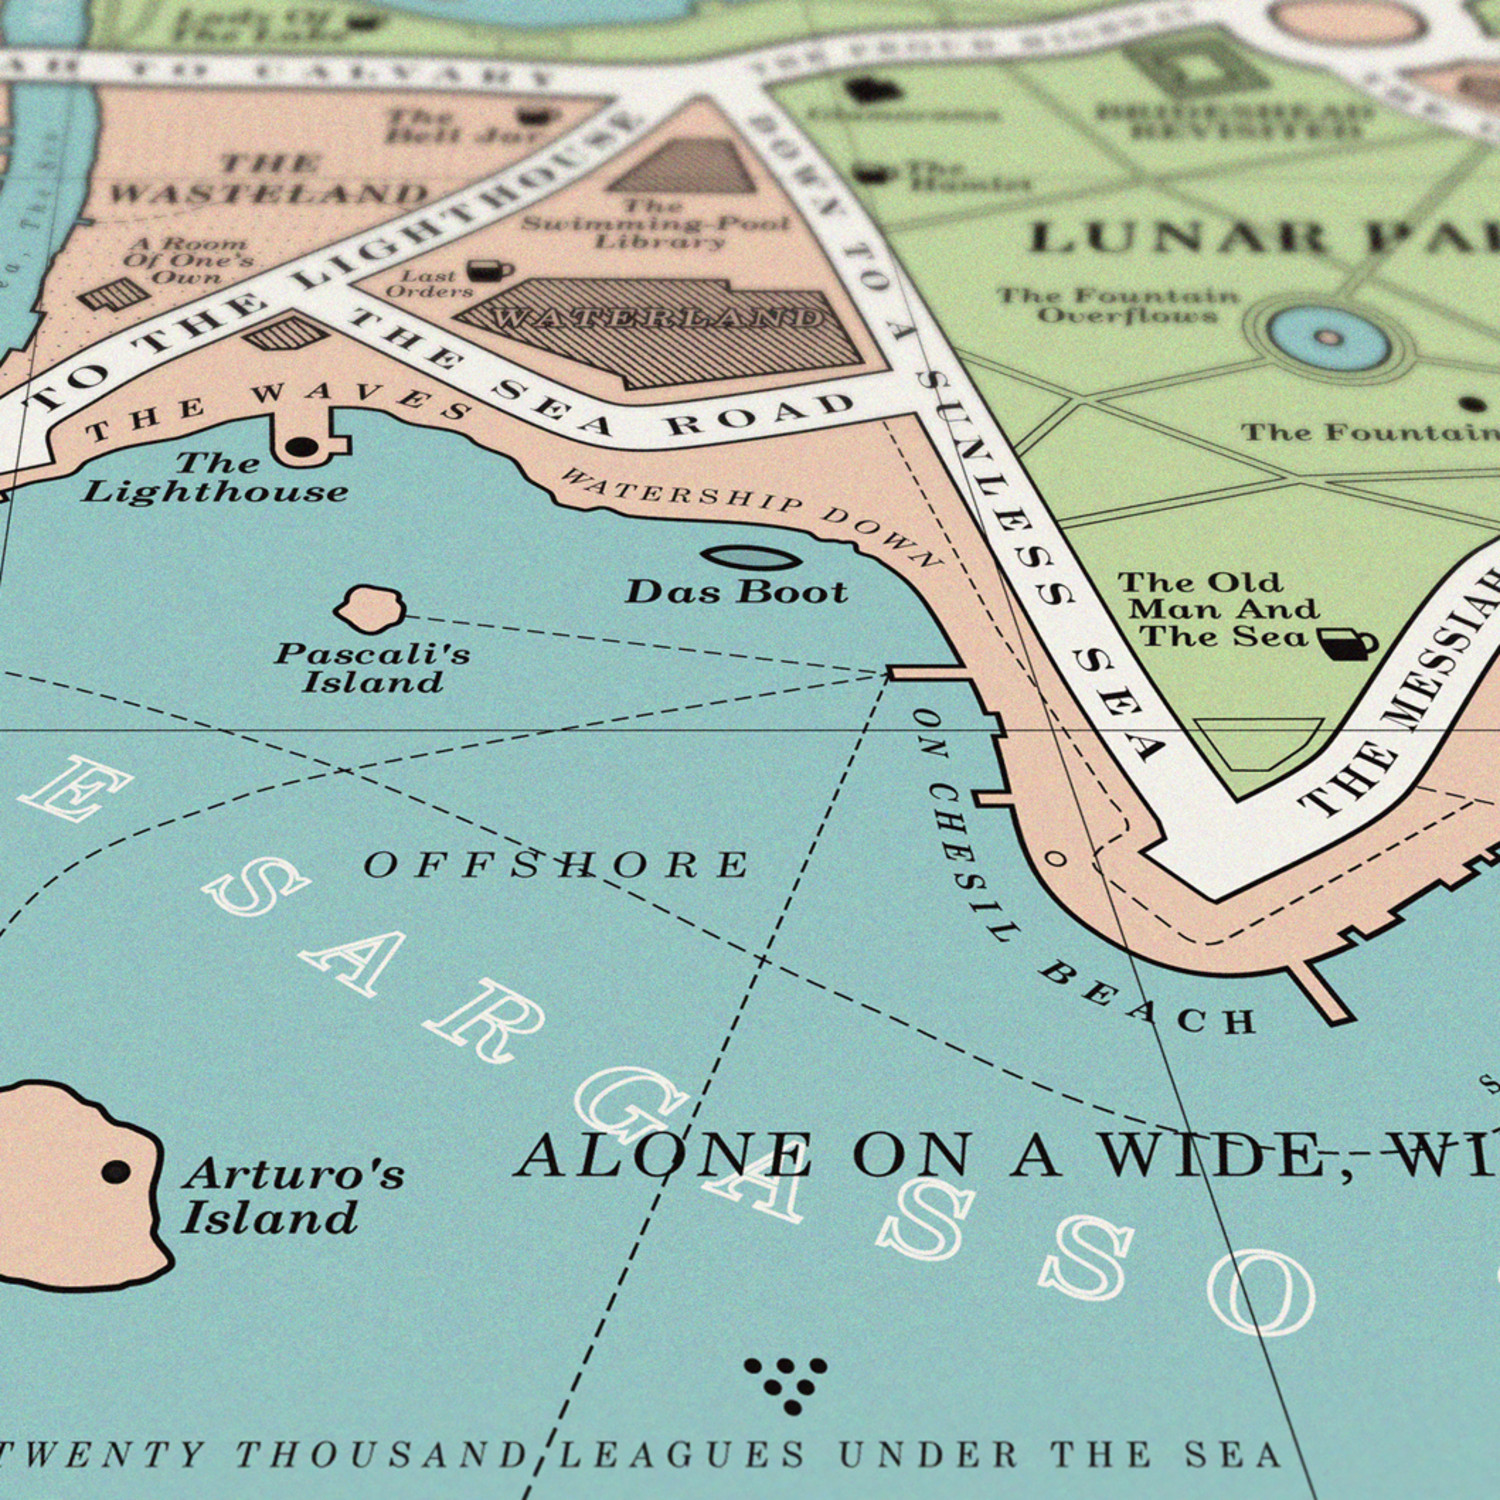 Book Map - Dorothy - Touch of Modern Catcher In The Rye Map on